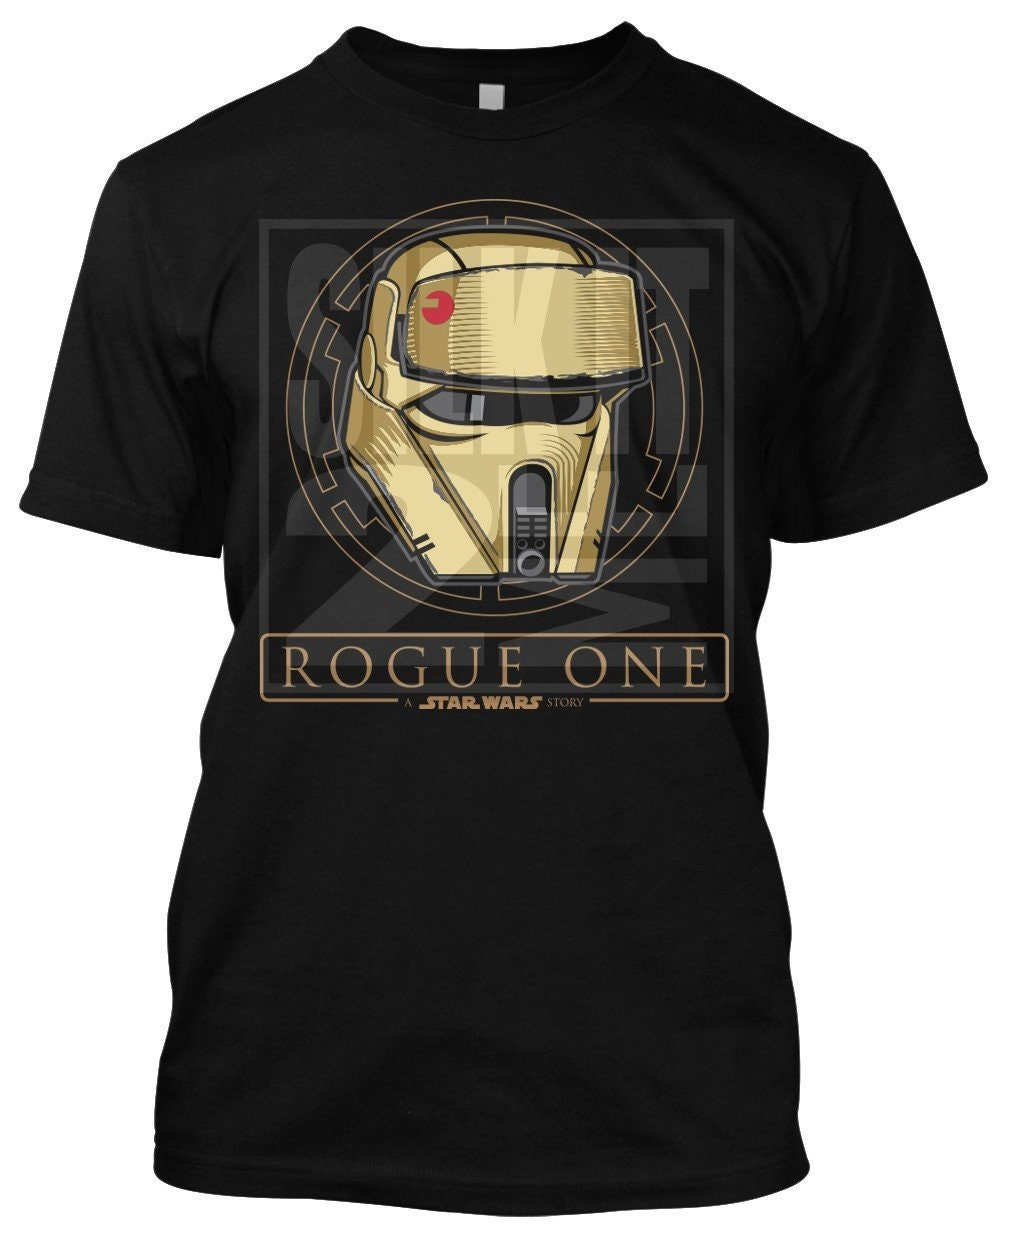 star wars rogue one shoretrooper t shirt. Black Bedroom Furniture Sets. Home Design Ideas